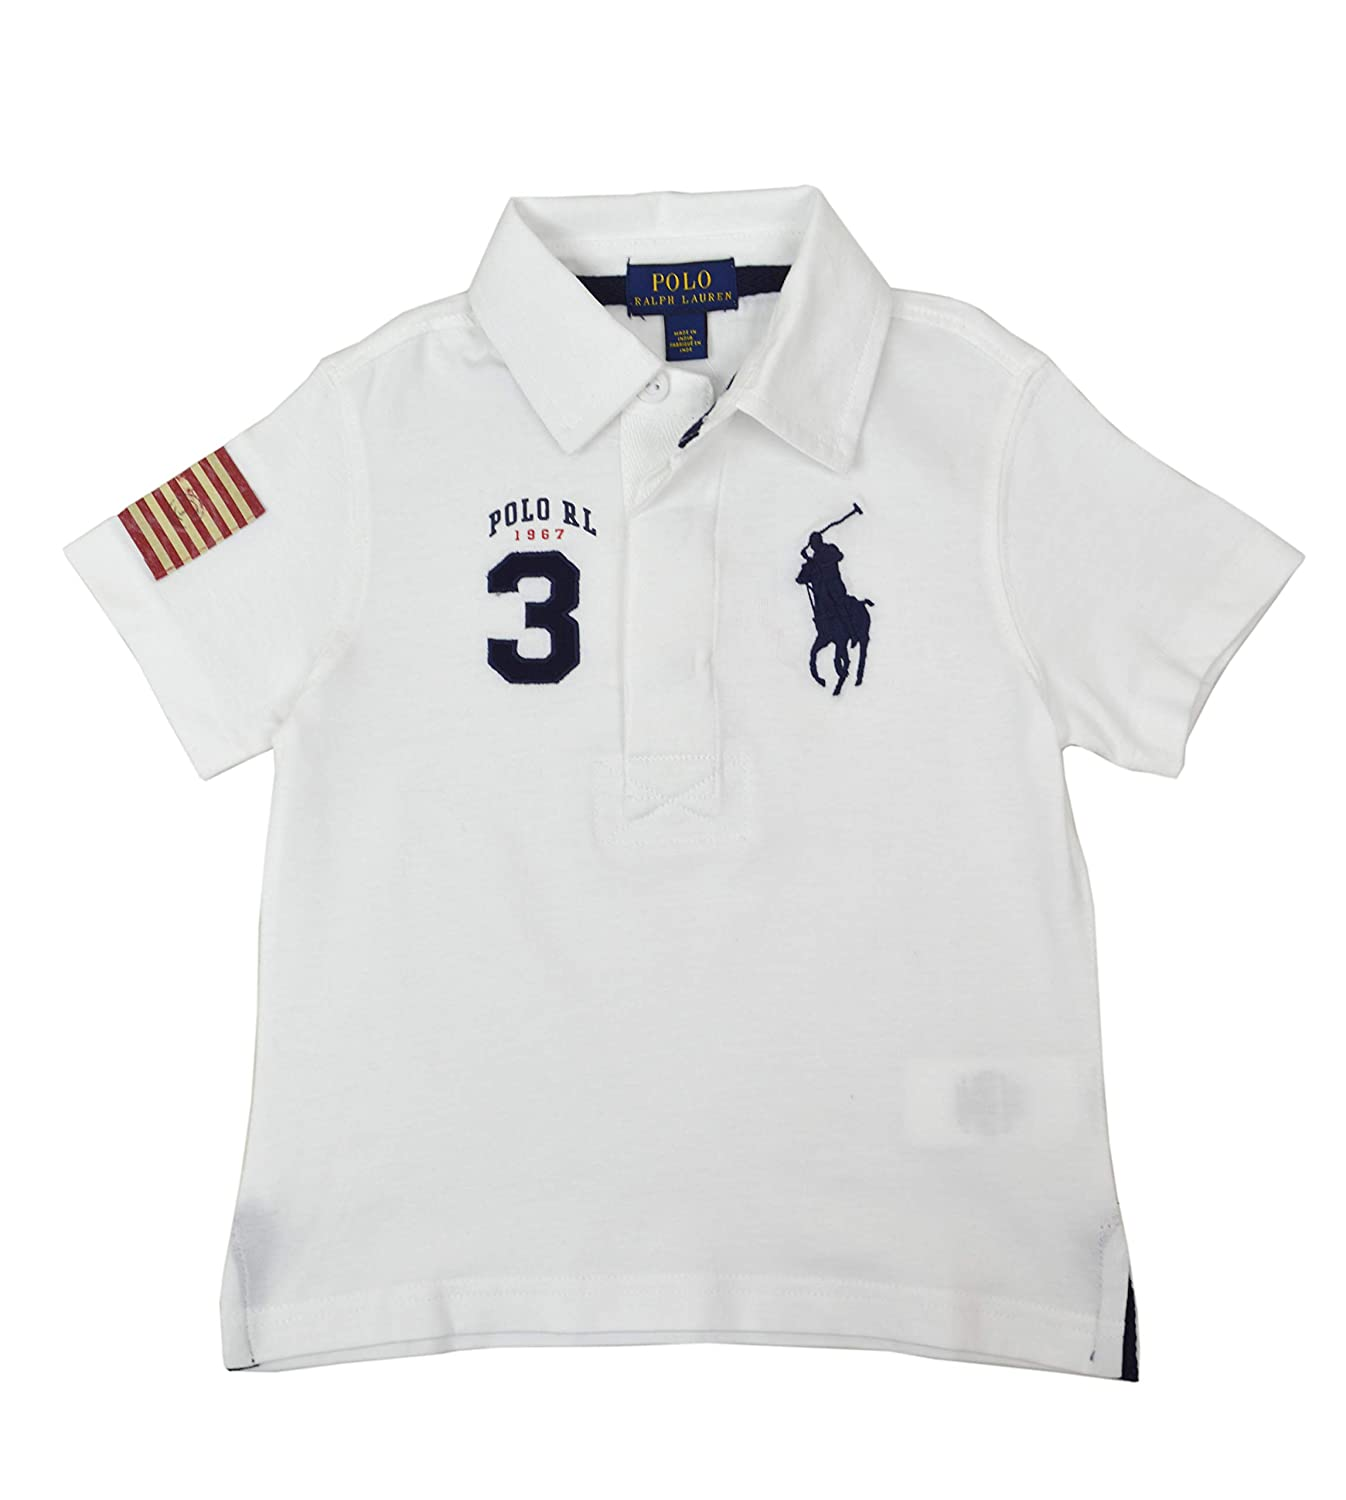 802965b65 Polo Ralph Lauren Boys Big Kids Big Pony USA Polo Shirt White Blue:  Amazon.ca: Clothing & Accessories